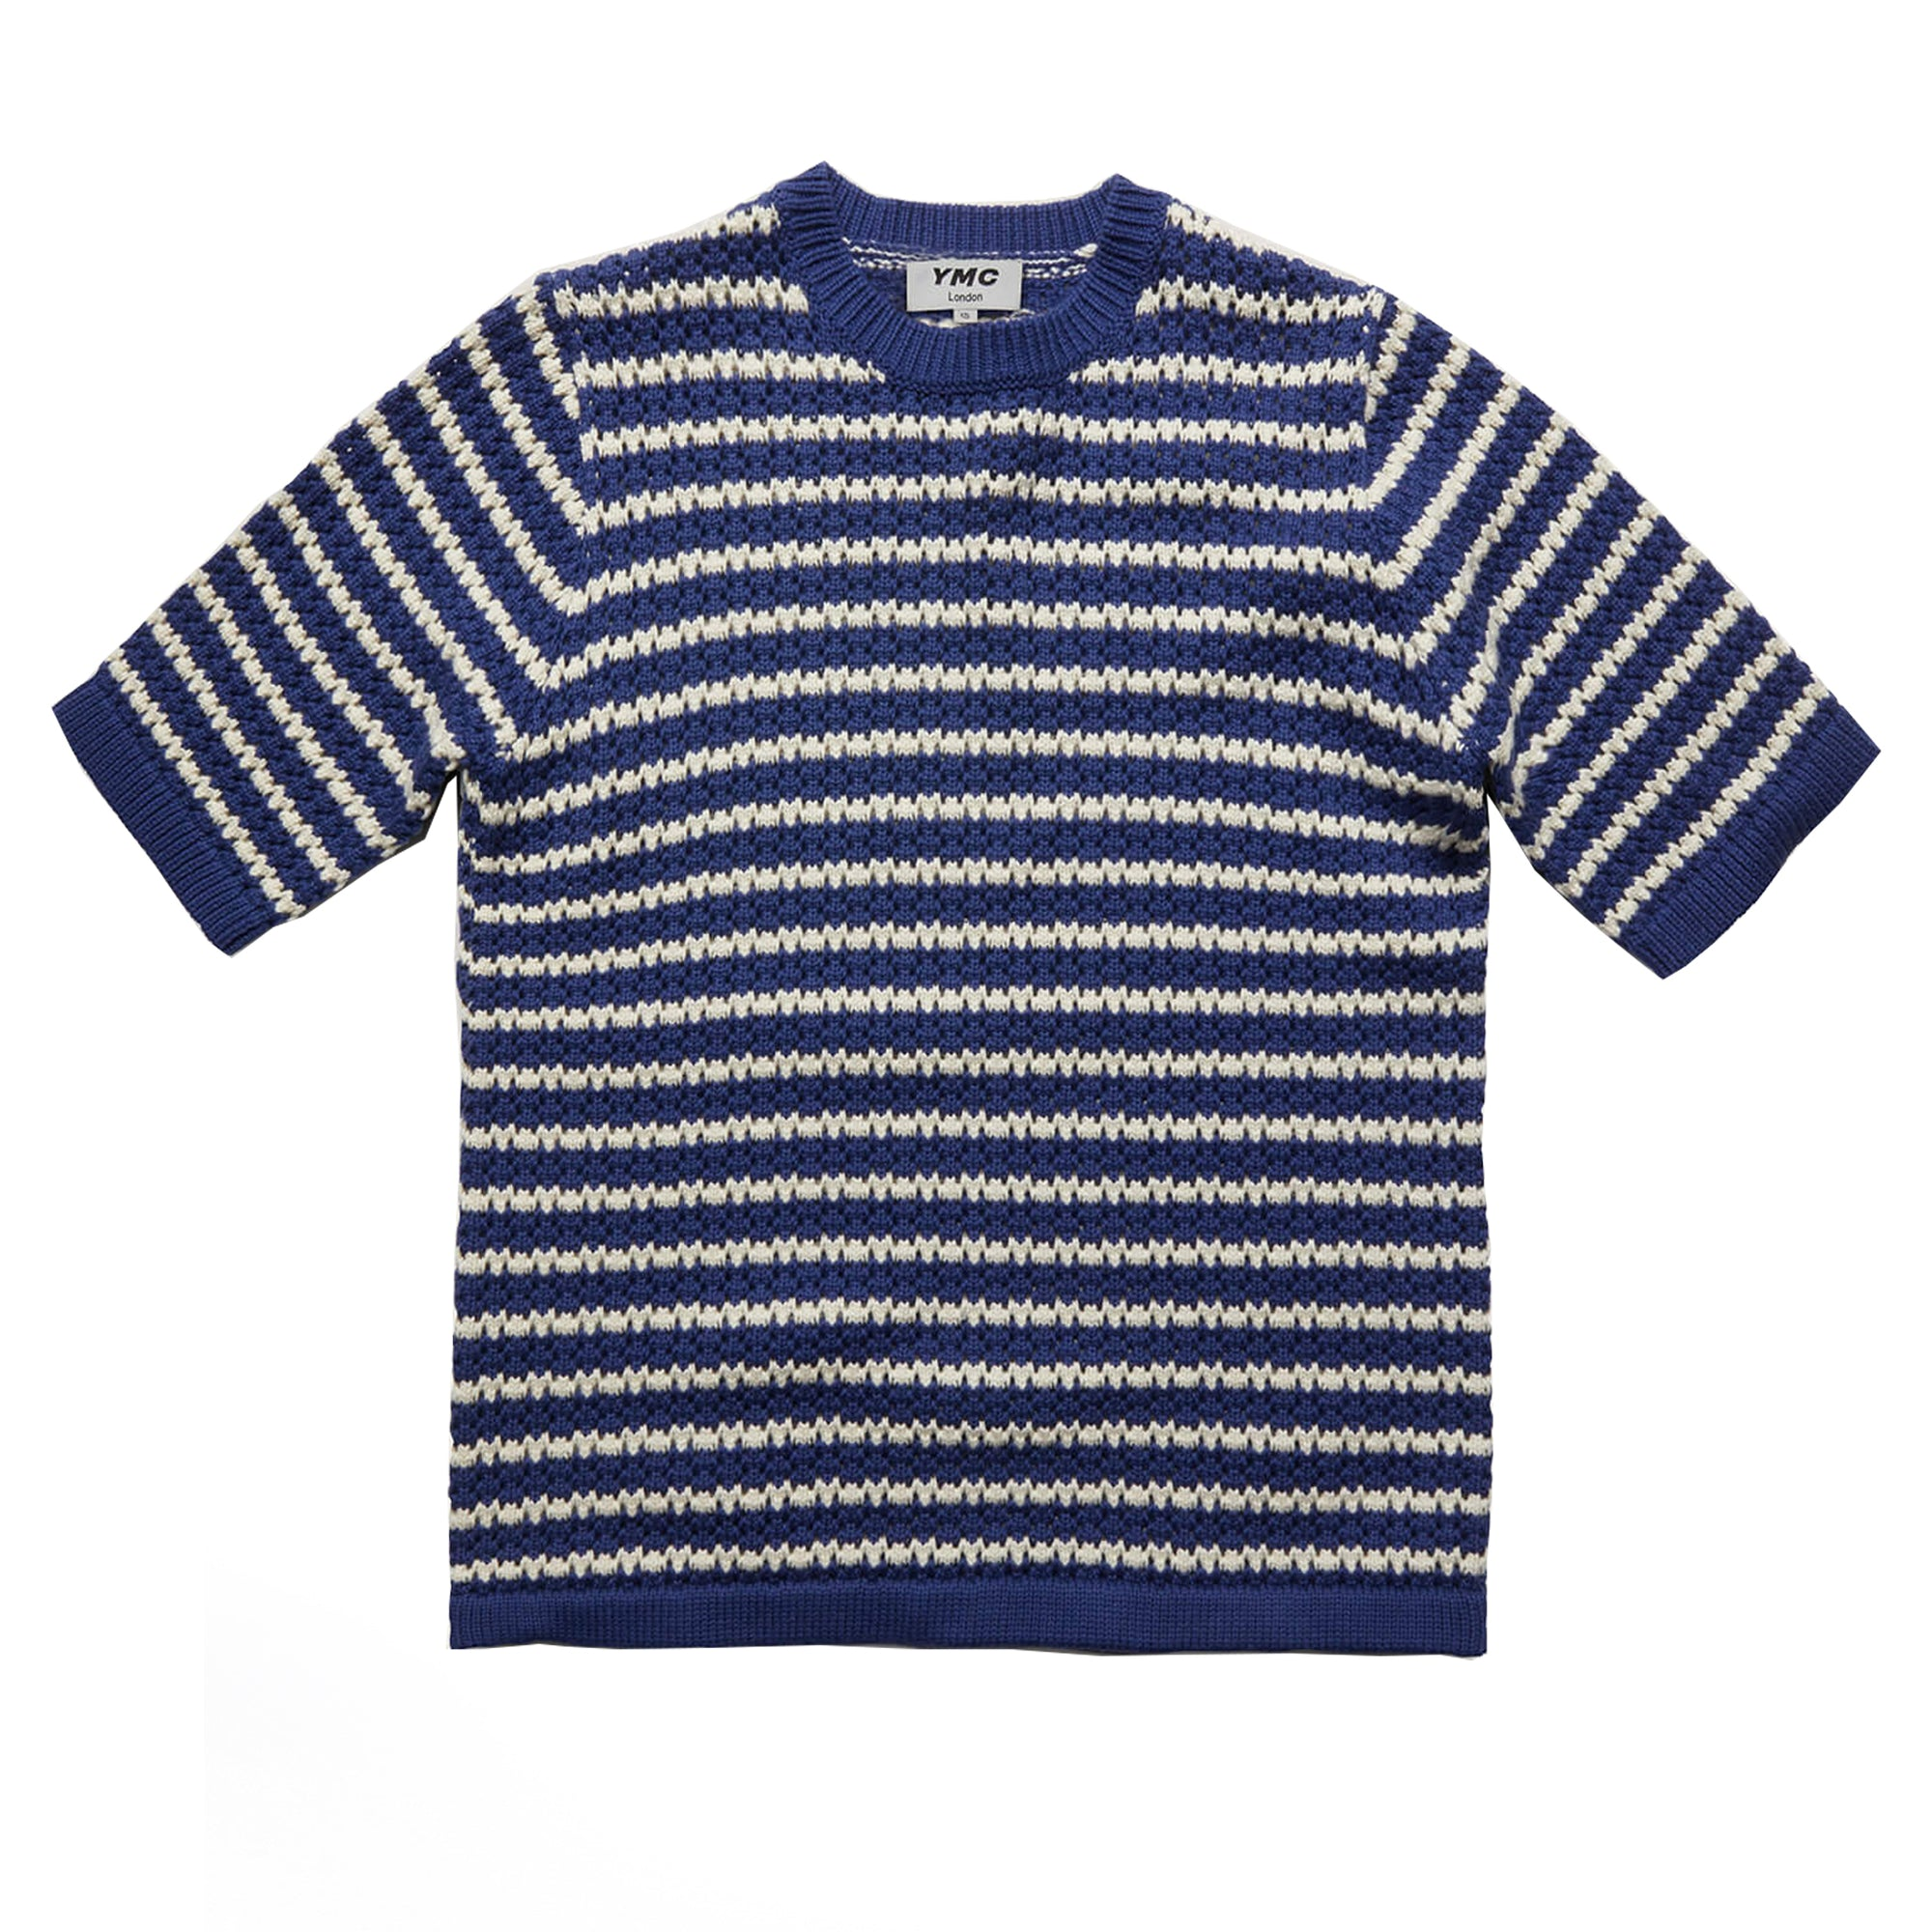 YMC Womens S/S Block Knit: Blue / Ecru - The Union Project